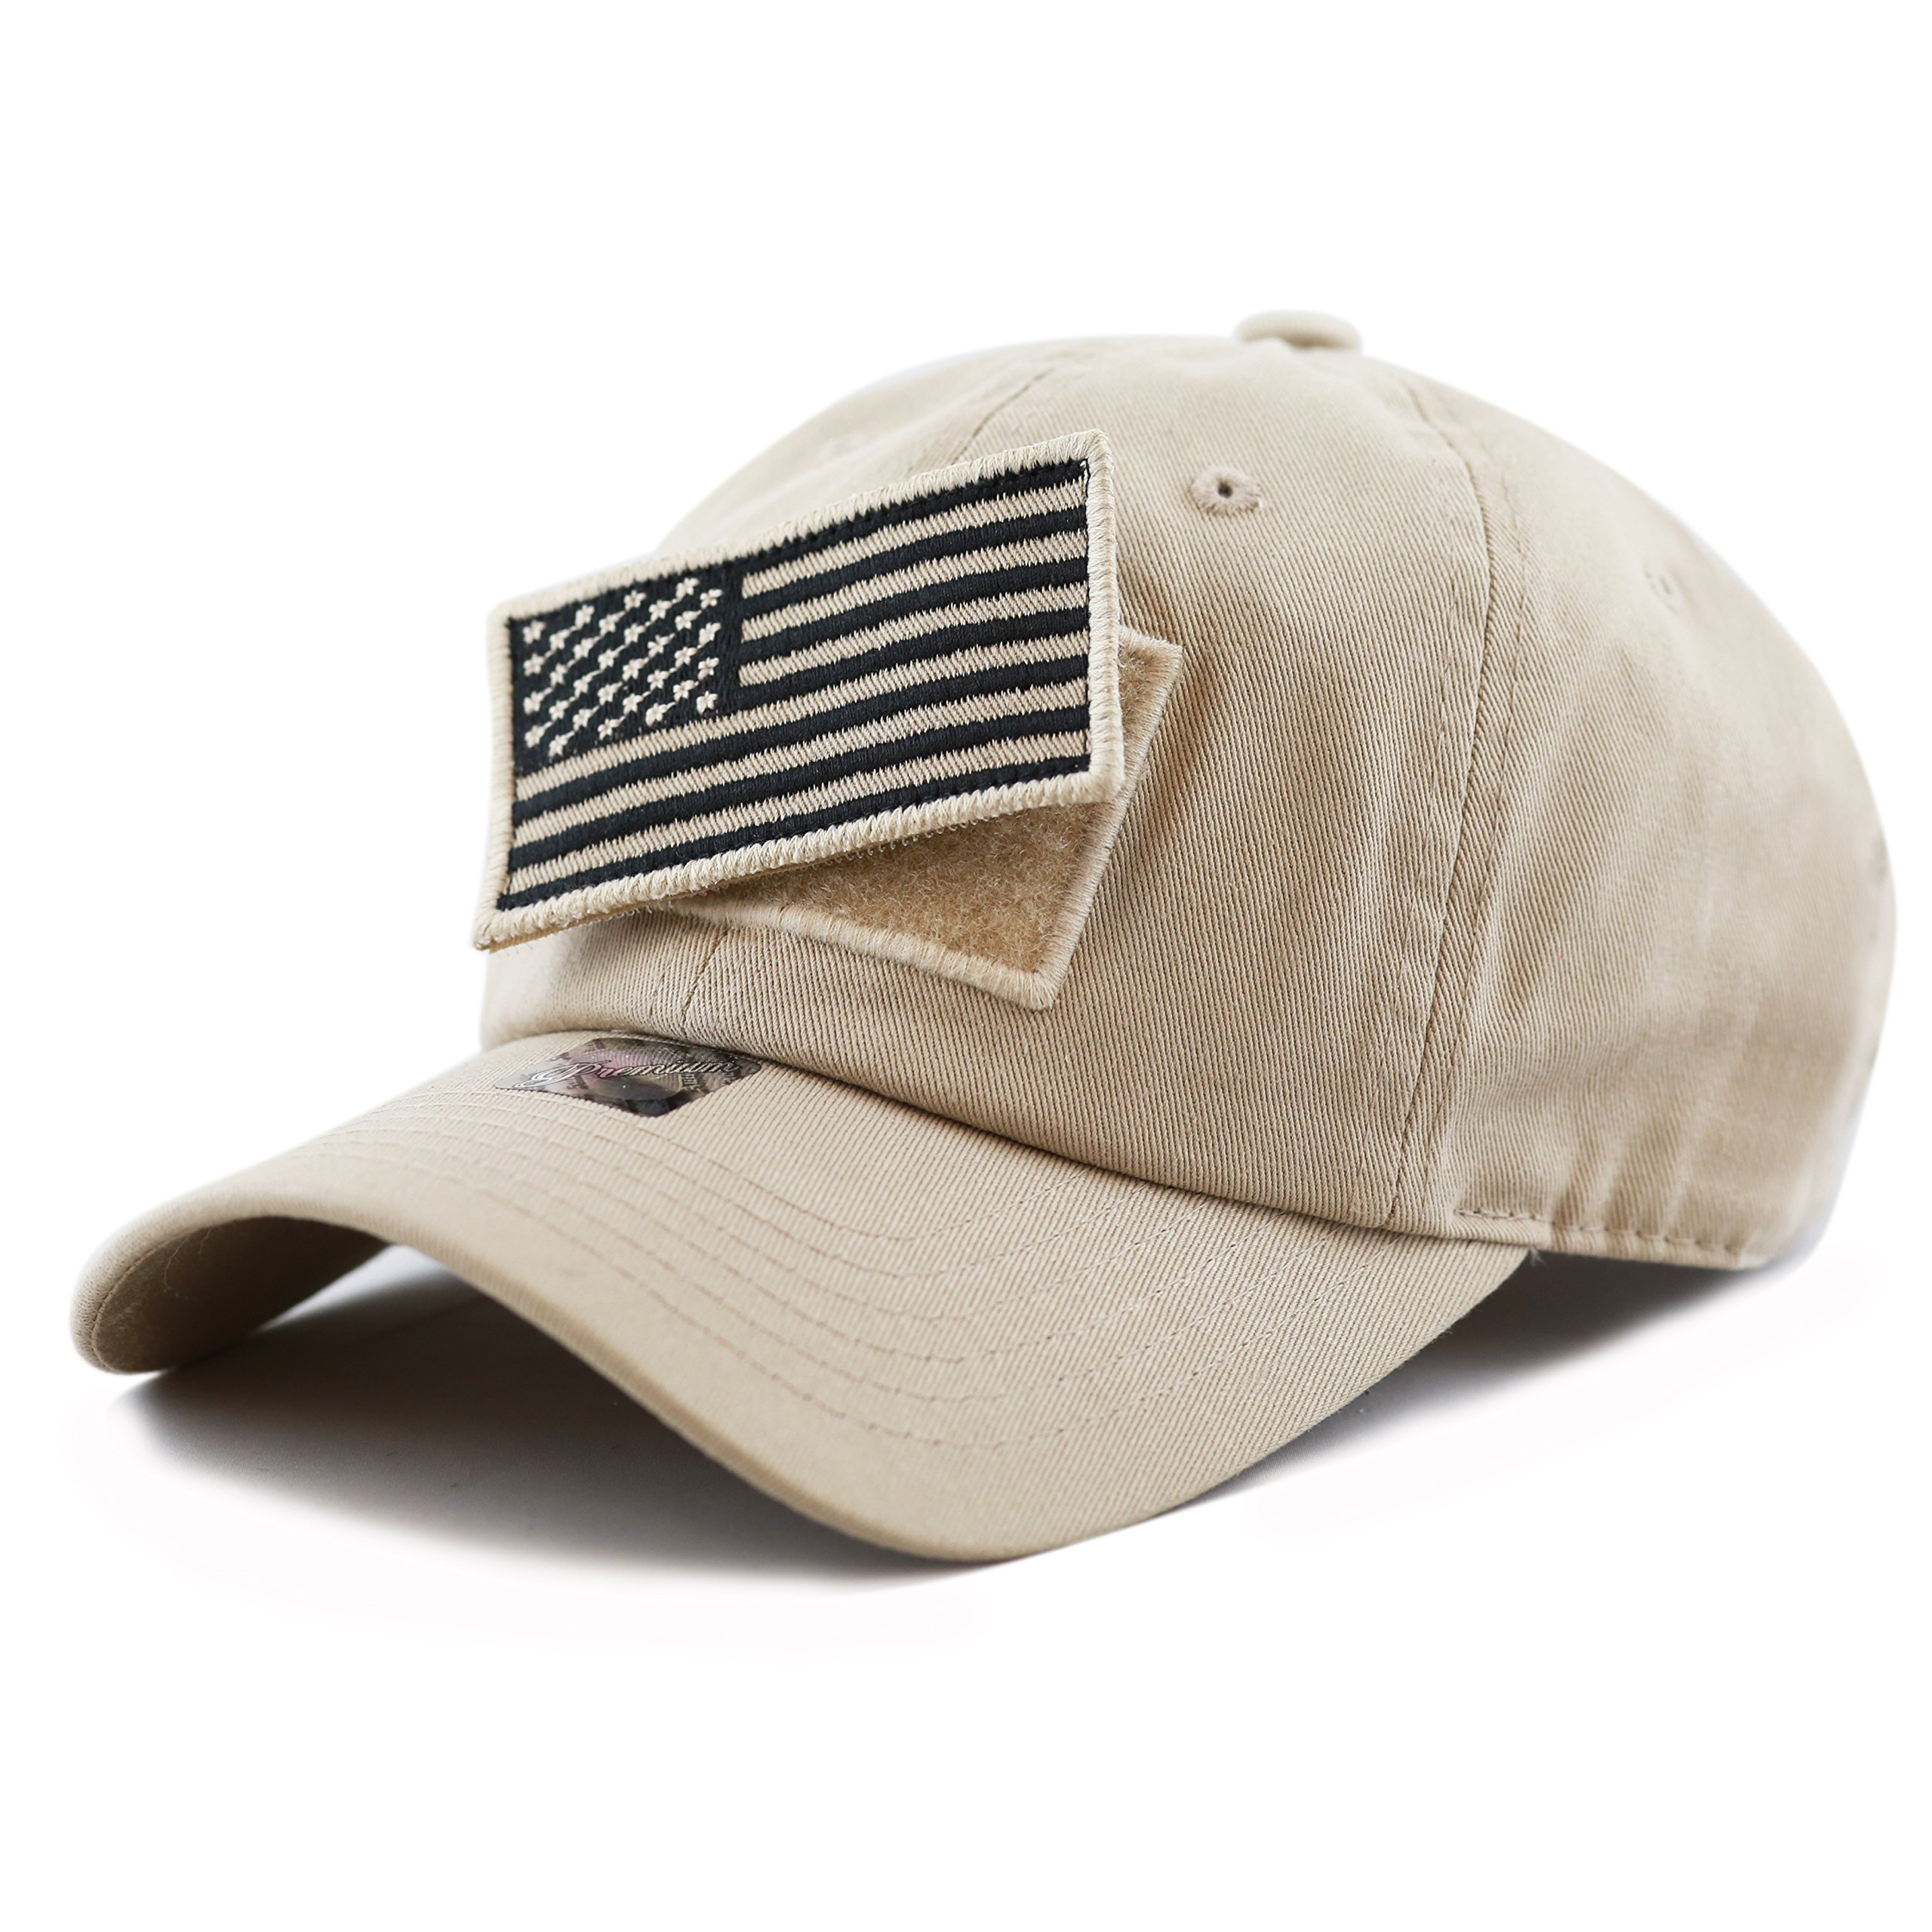 THE HAT DEPOT Cotton Low Profile Tactical Operator USA Flag Patch Buckle  Mesh Cap 4fce9dd84169